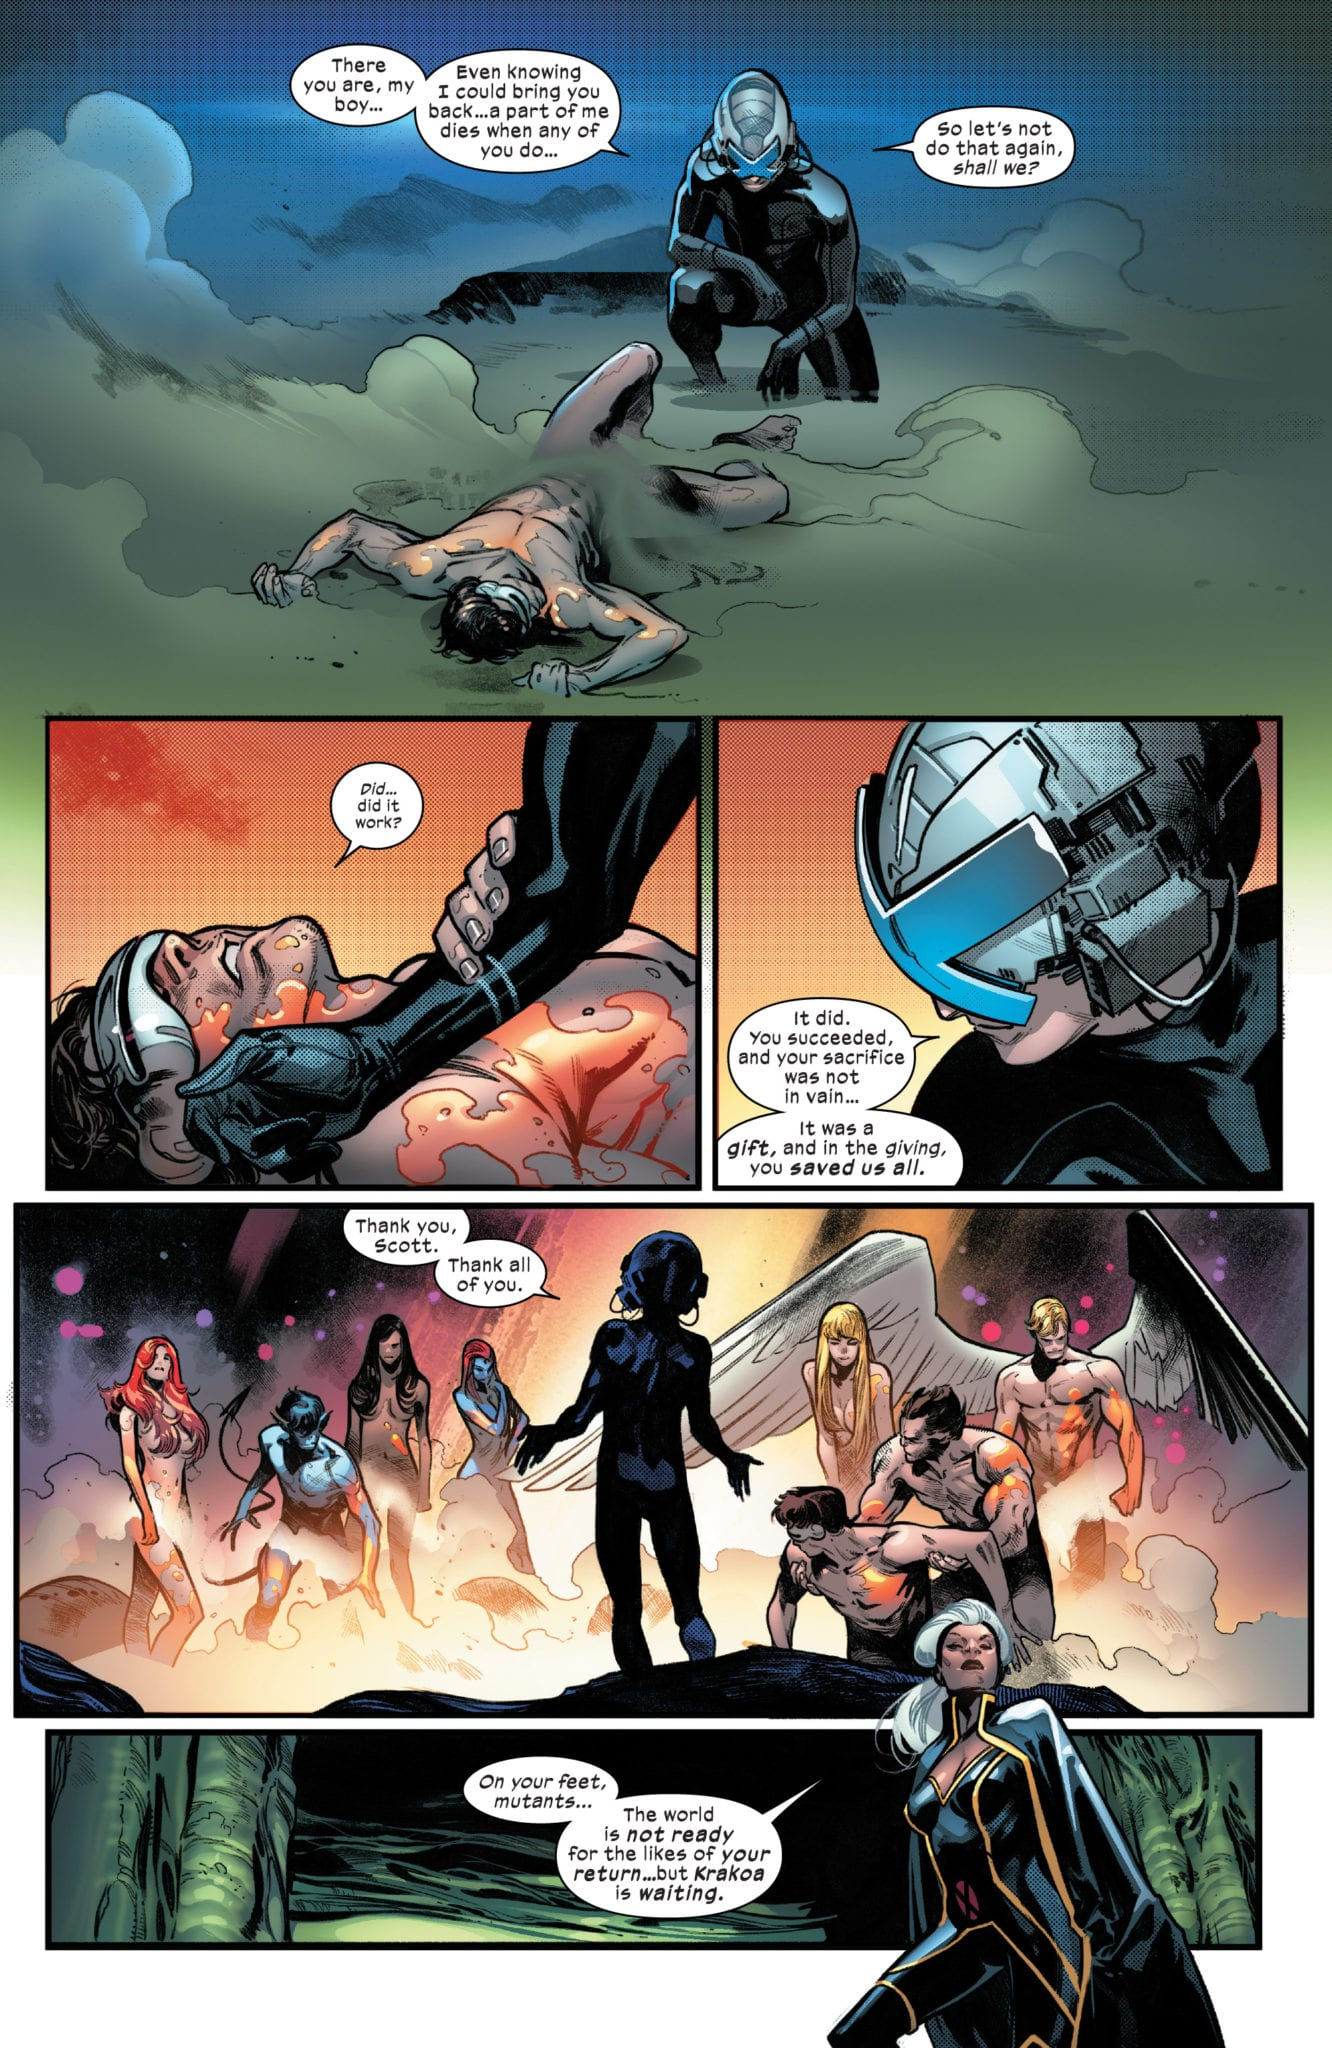 HOUSE OF X #5 - Get Ready For Your Mind To Be Blown 2